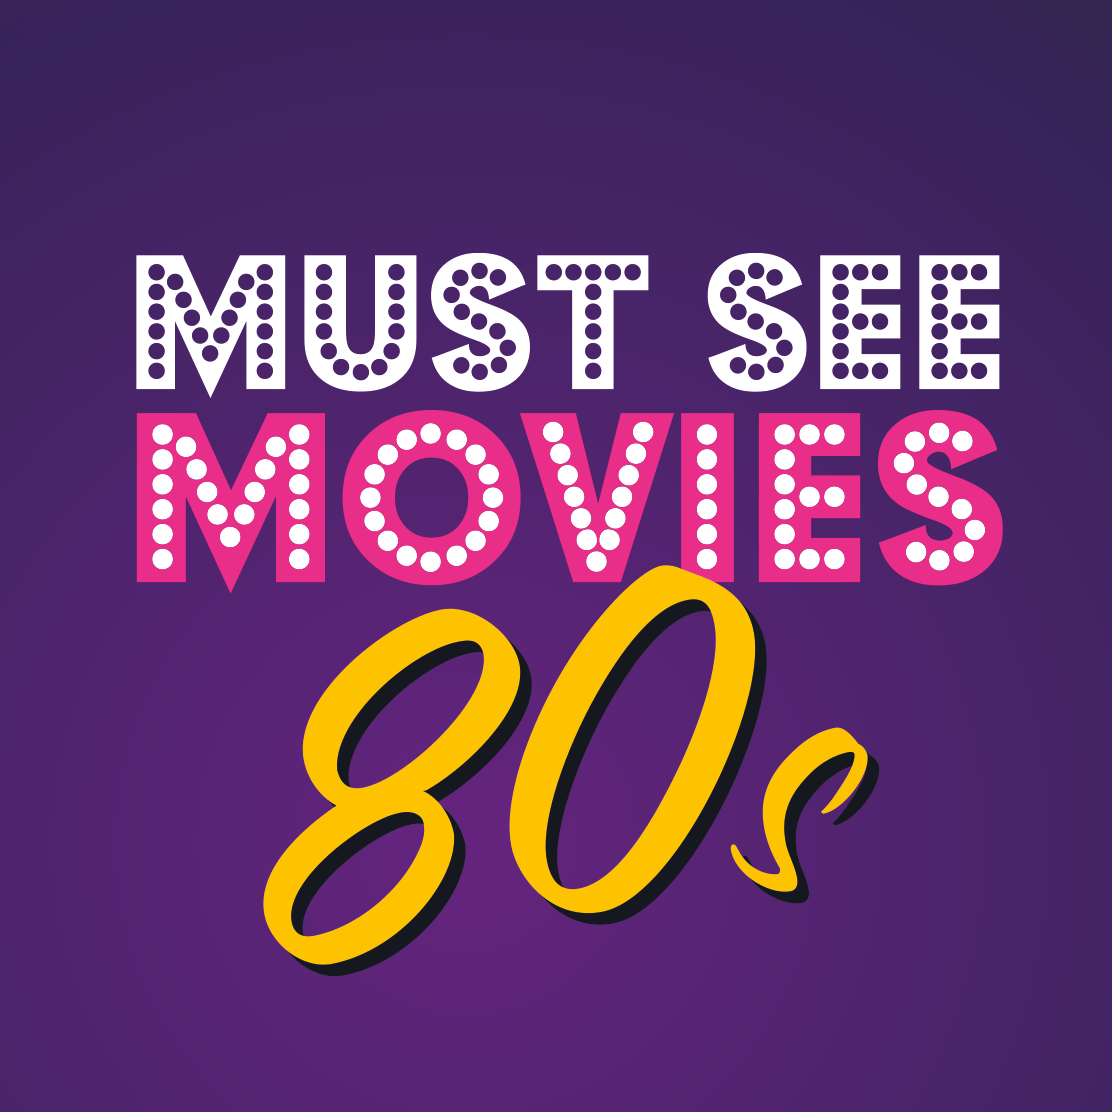 Must See Movies 80s aligns with National Album Day 2020 to celebrate the sights and sounds of 80s